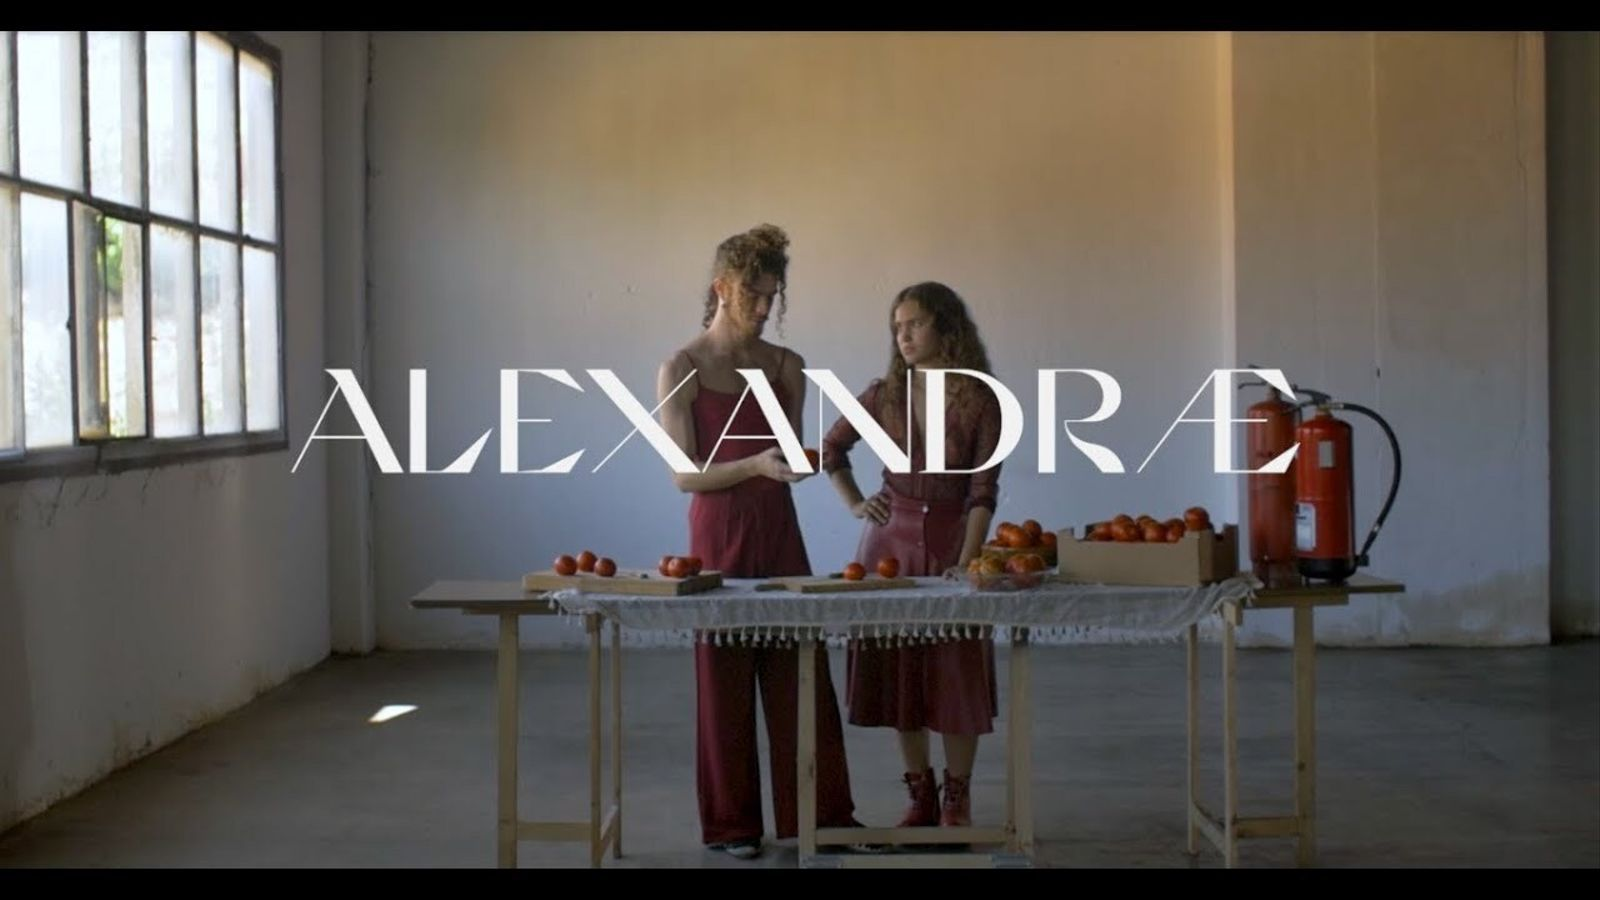 Alexandrae, 'Amazing species', videoclip